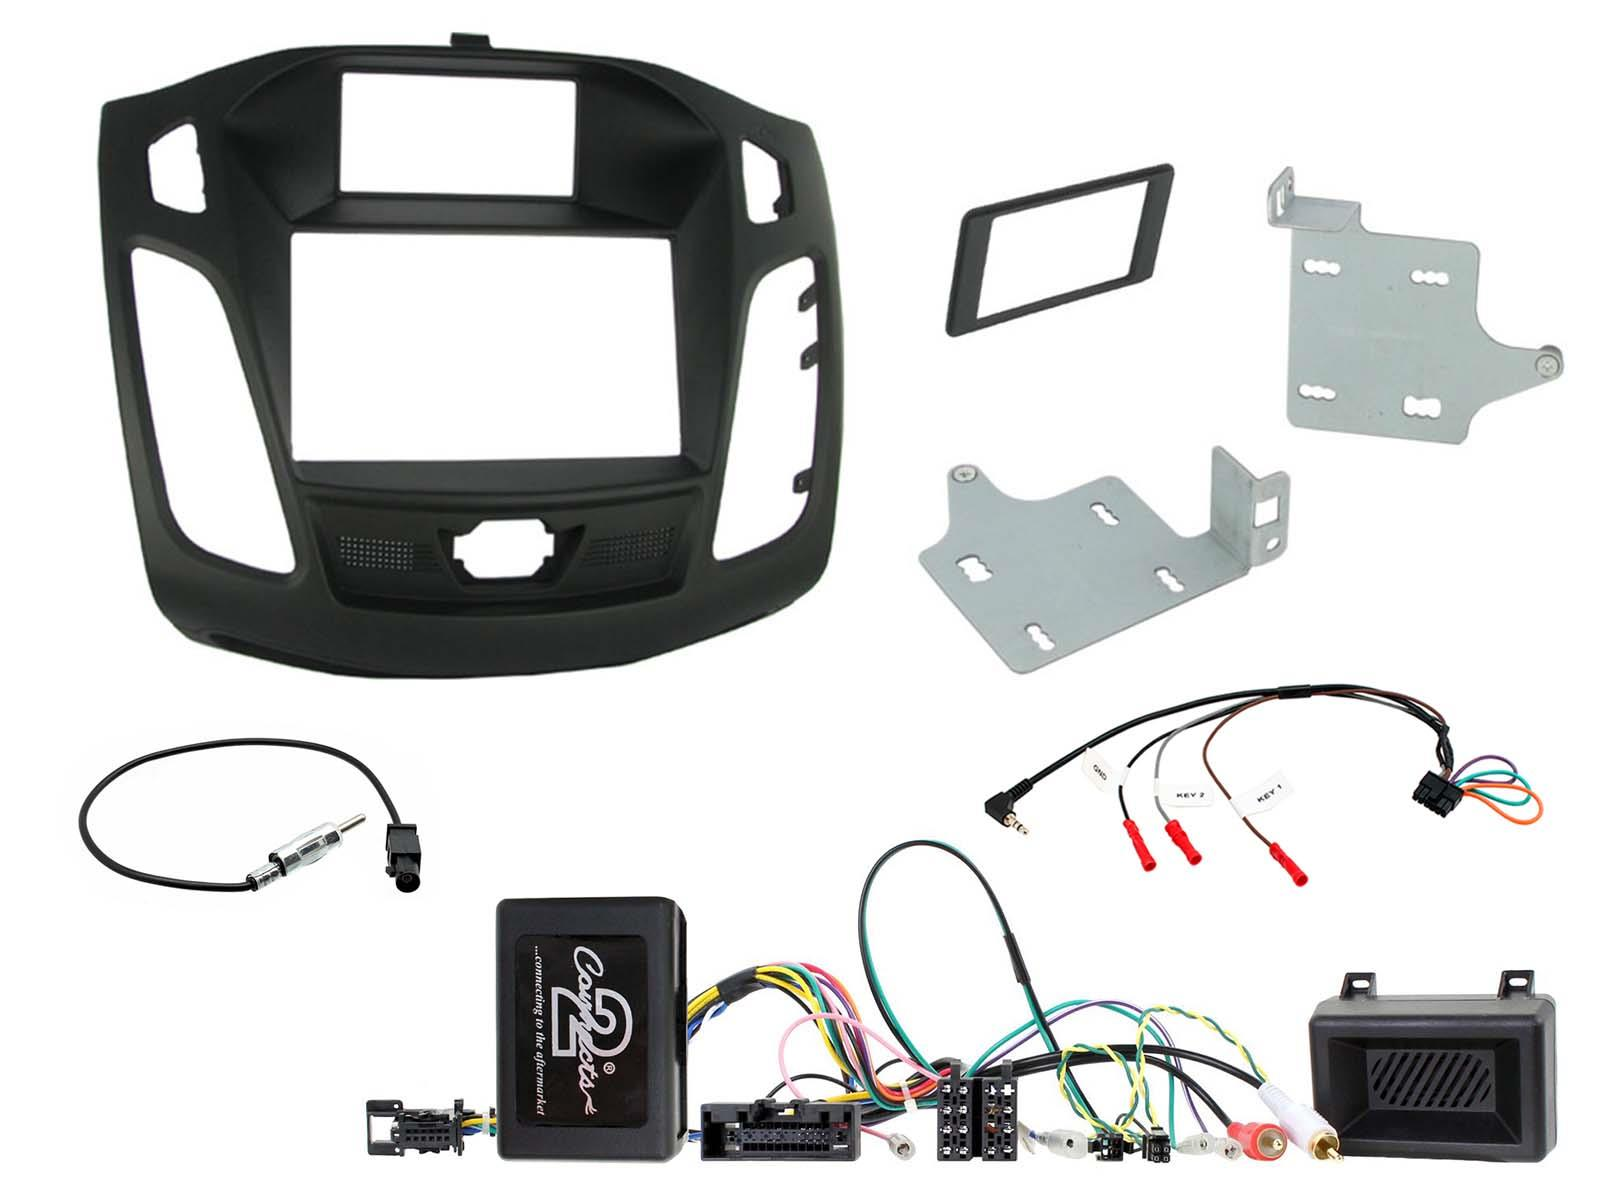 Connects2 Ltd Ford Focus Wiring Harness Kits Product Video